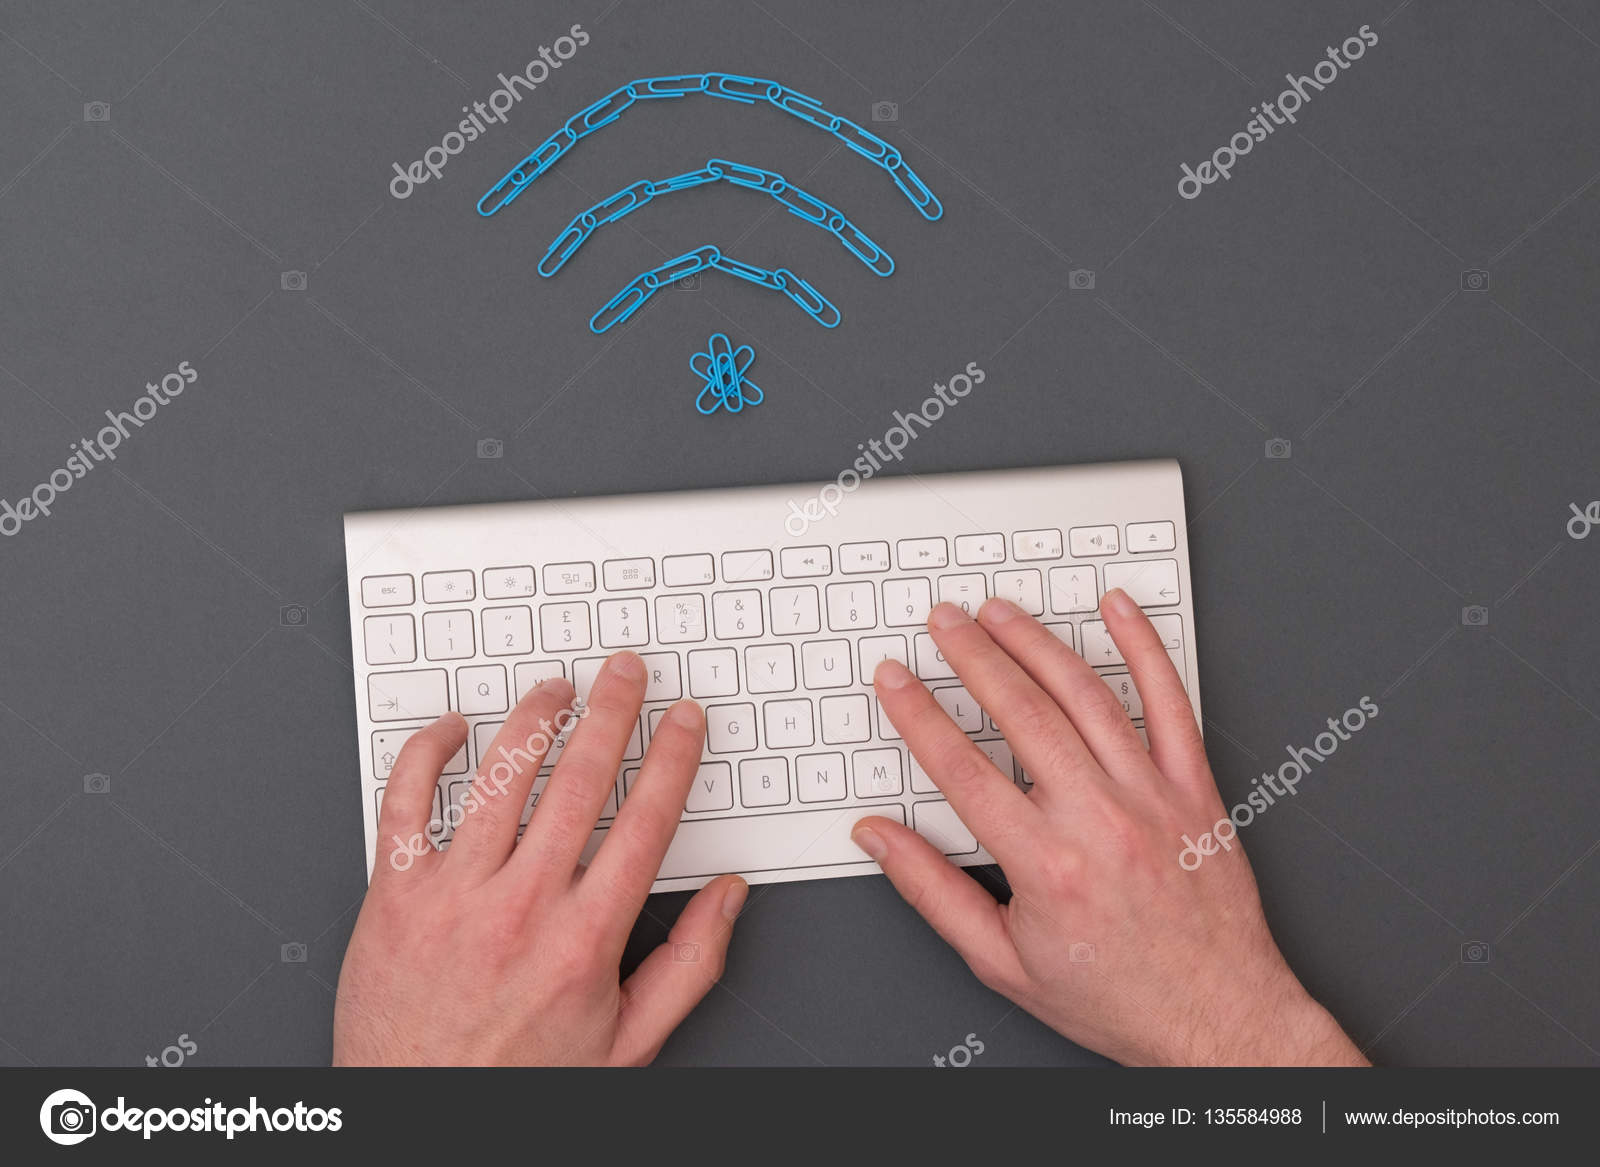 Wireless Signal Symbol Made Of Paperclips And Computer Keyboard